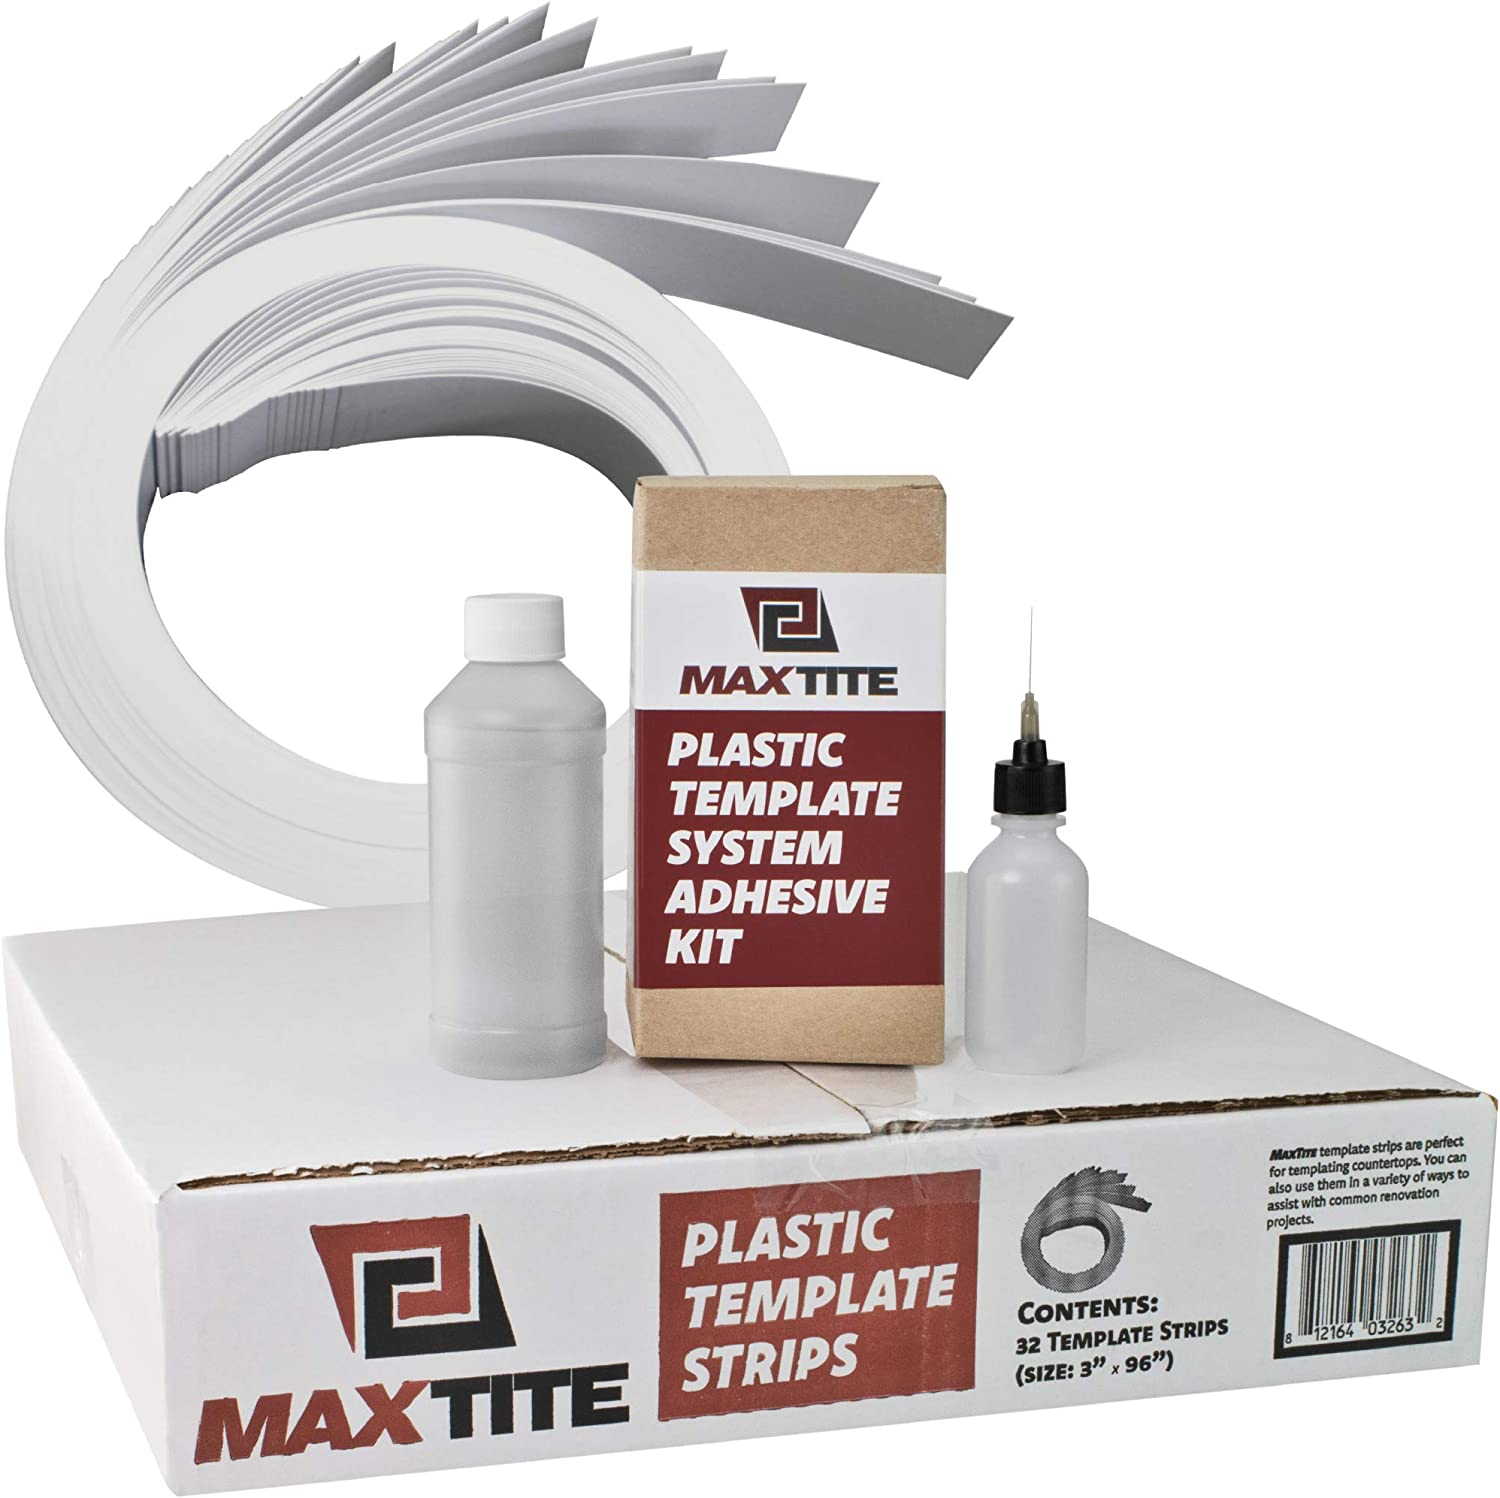 Plastic Template System 32 Strips with Glue Baltimore Mall and Appli excellence Adhesive